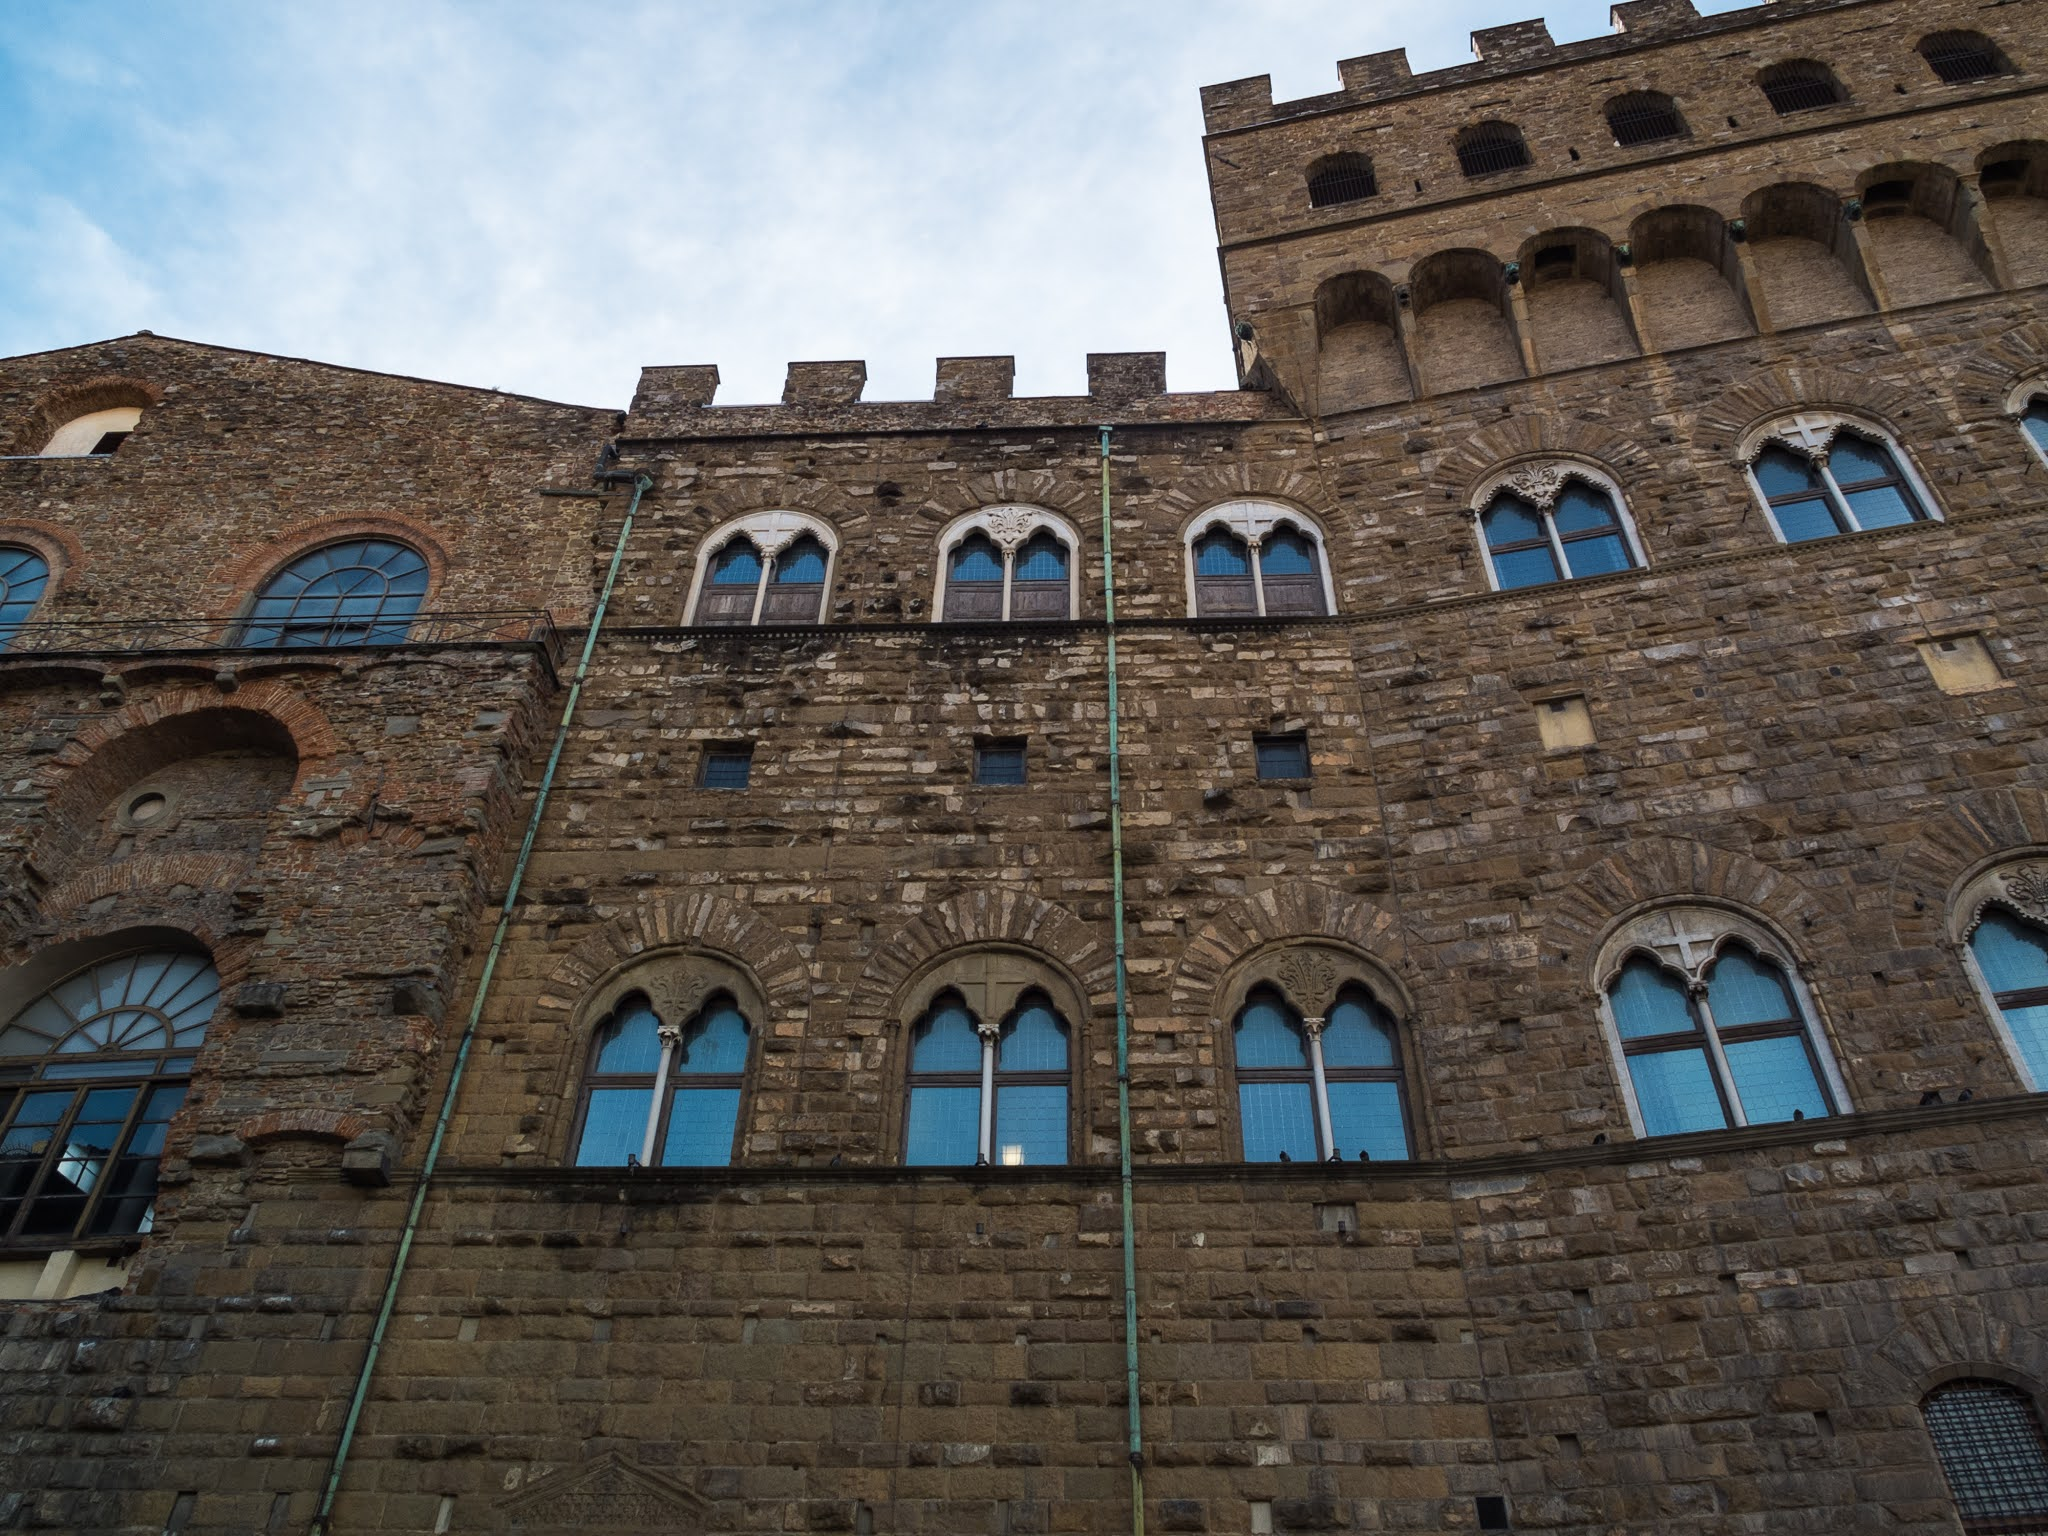 Looking up at the exterior of the Palazzo Vecchio in Florence.